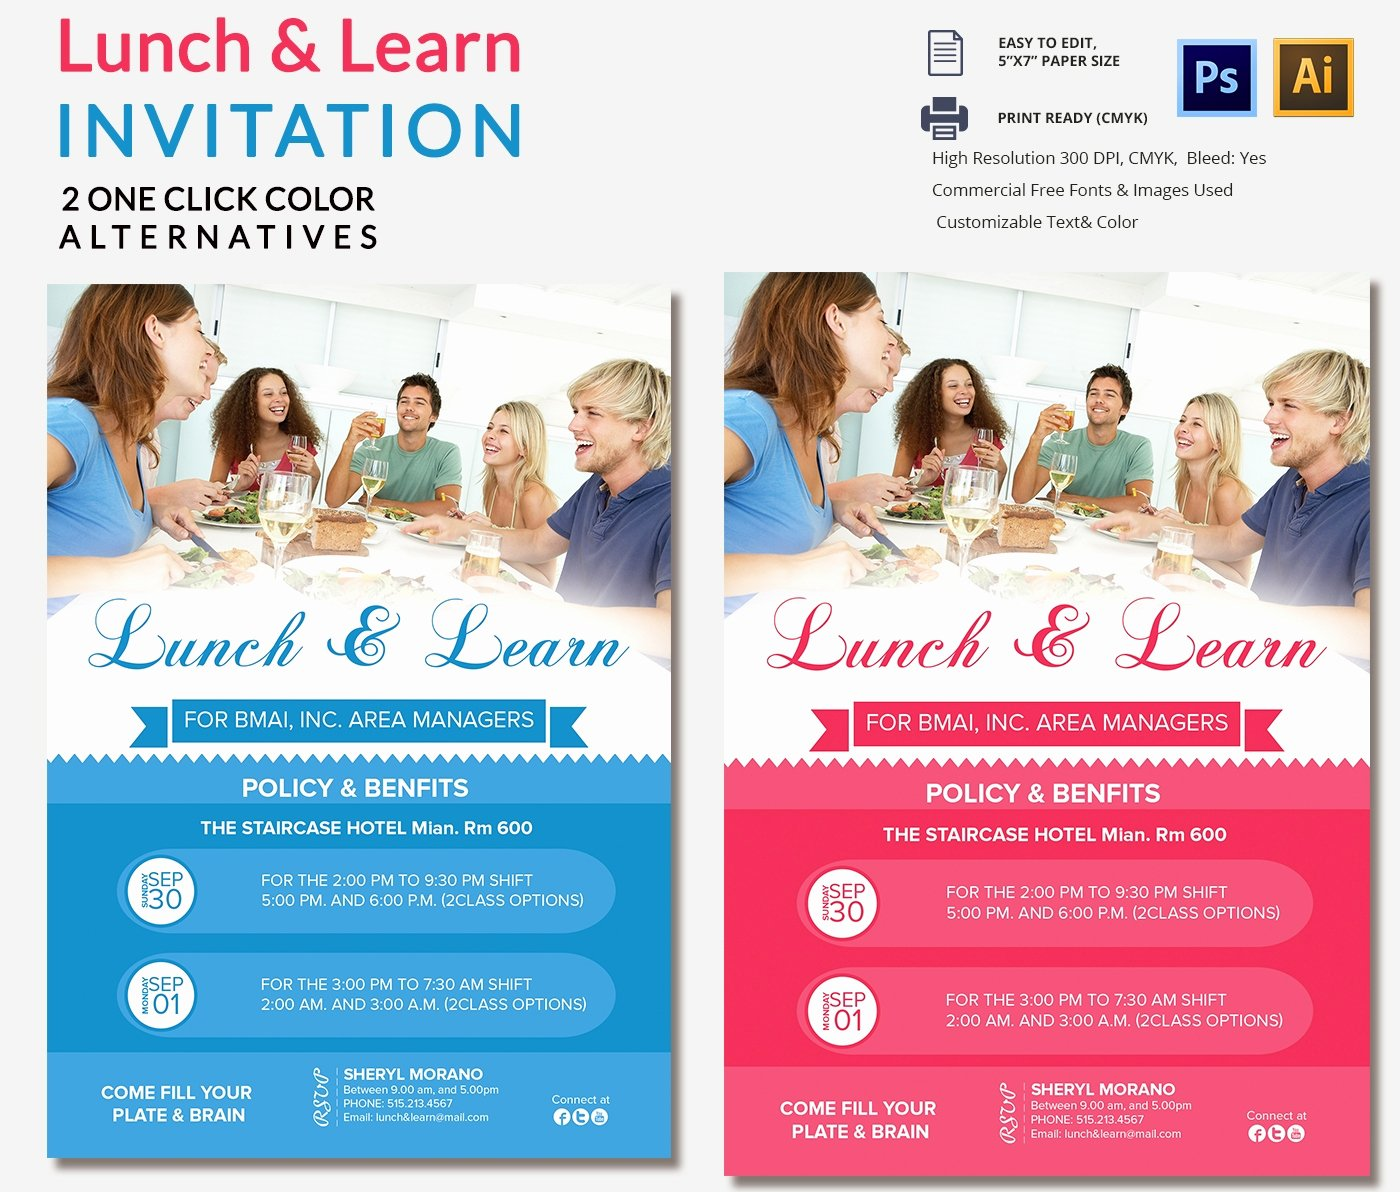 Lunch and Learn Invite Template Lovely Lunch Invitation Template 25 Free Psd Pdf Documents